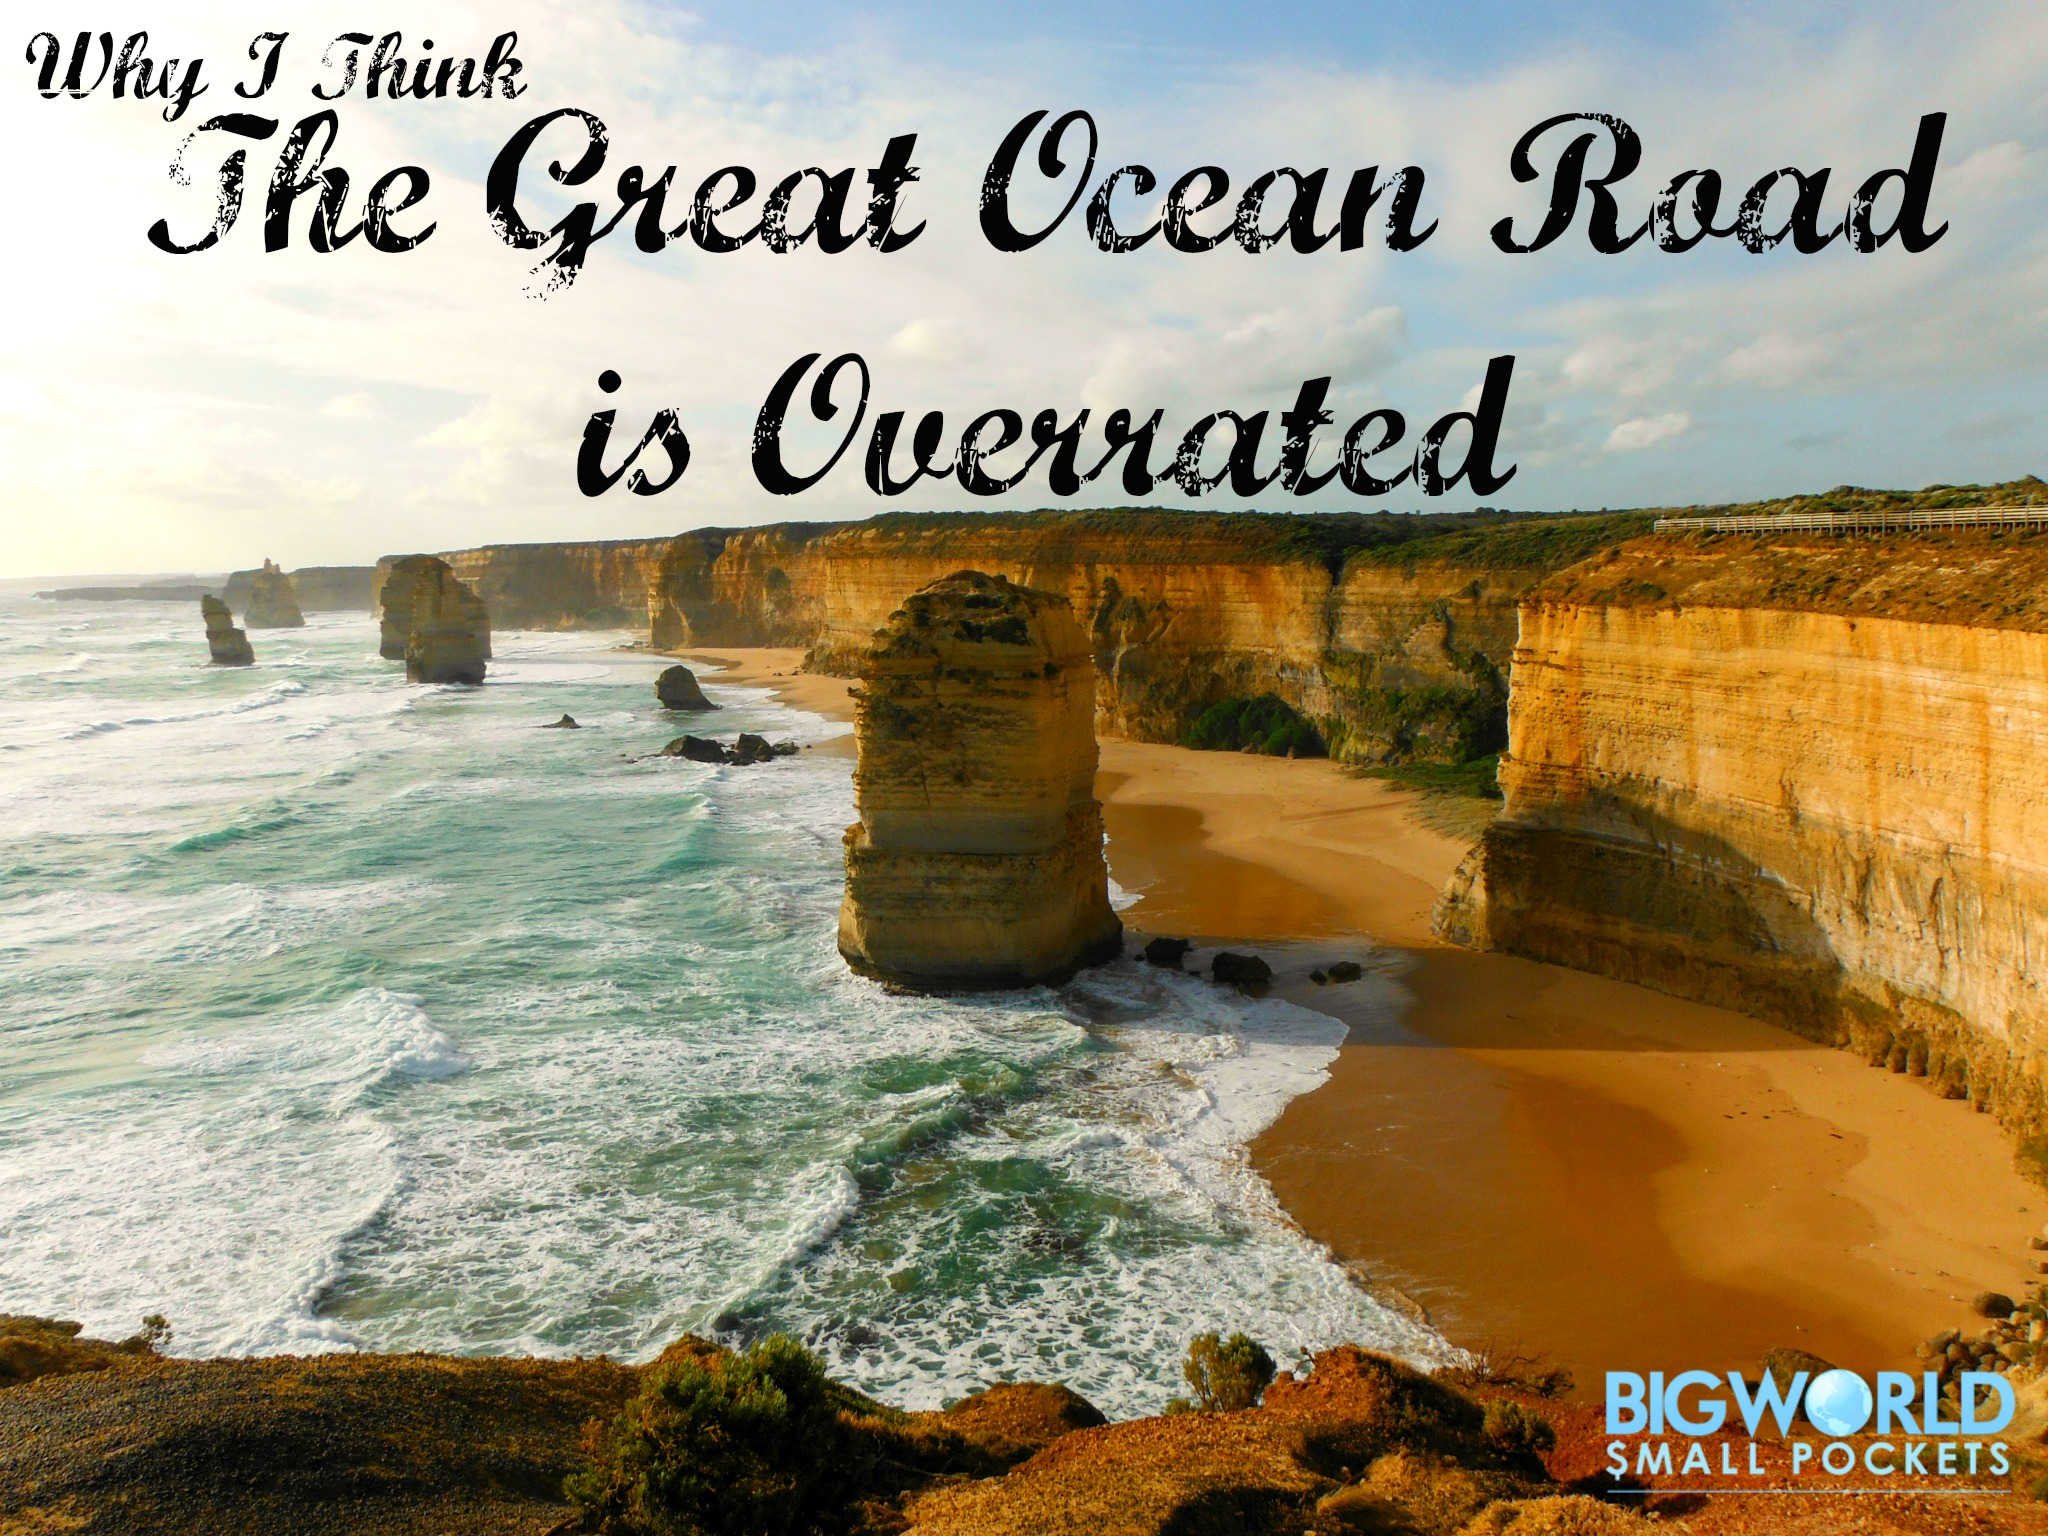 The Great Ocean Road is Overrated